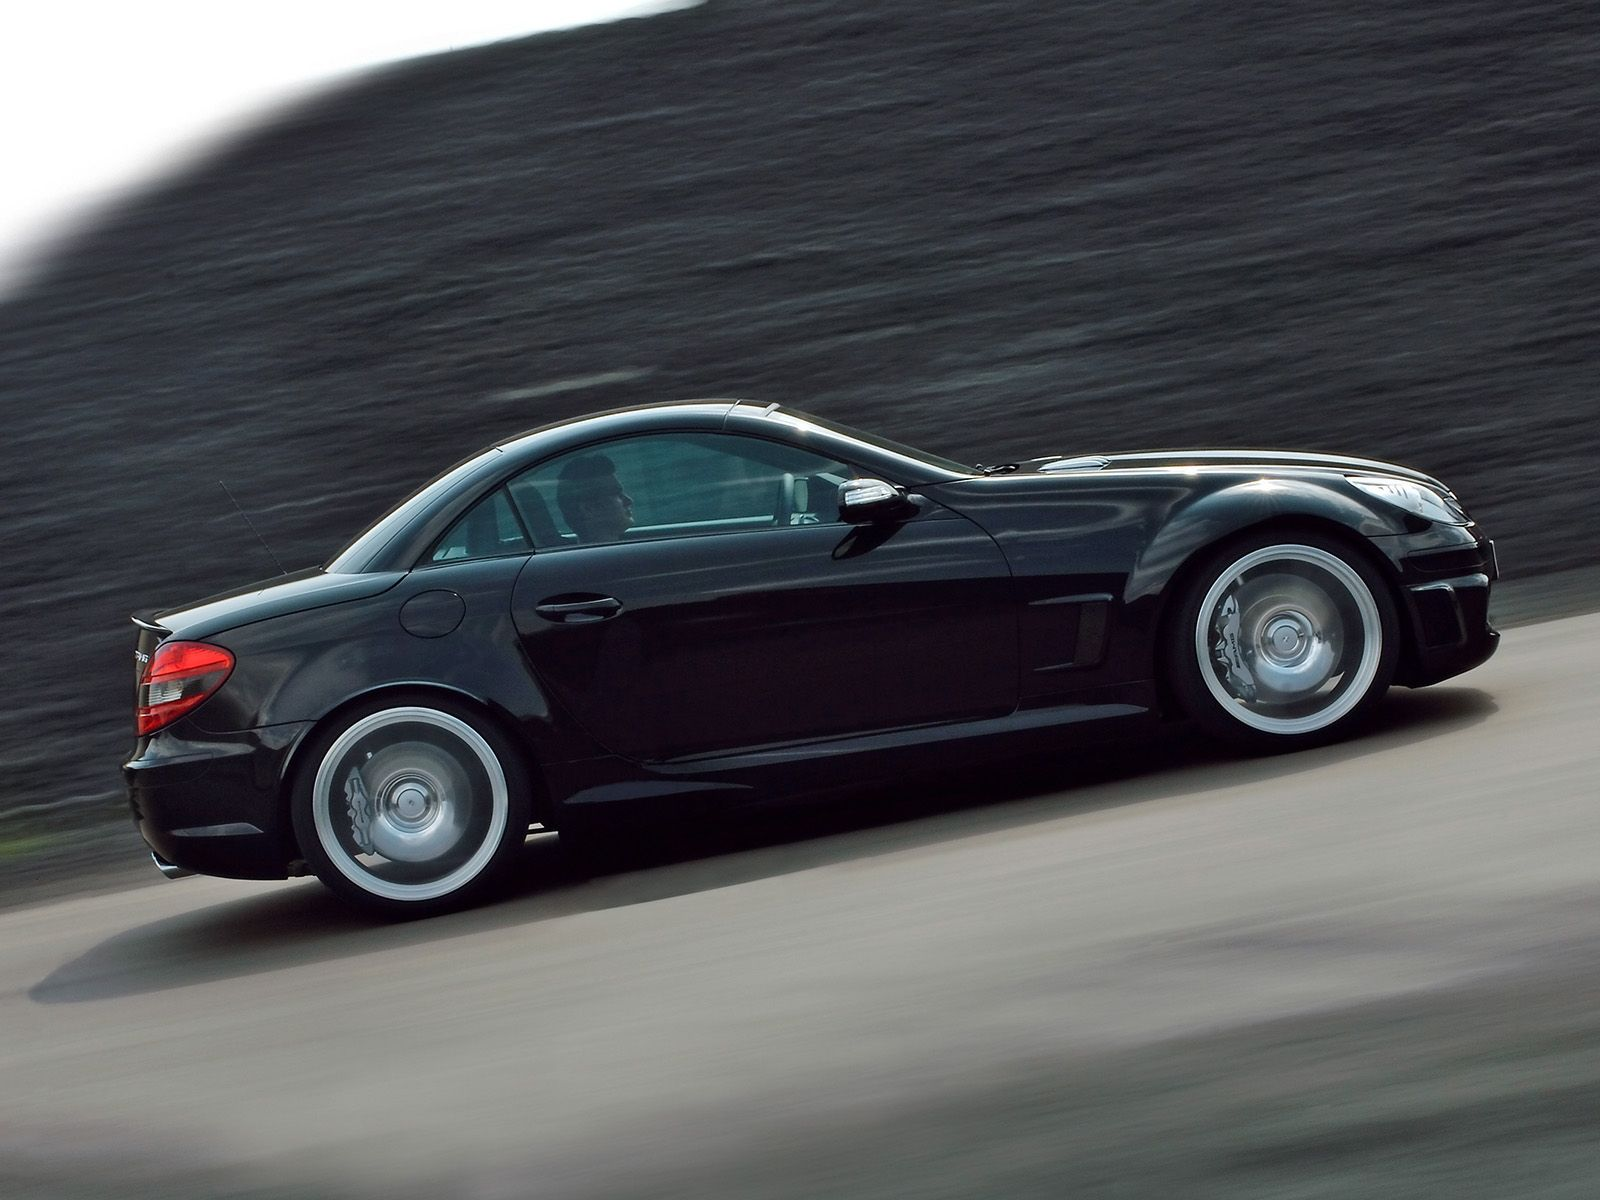 2007 Mercedes-Benz SLK 55 AMG Black Series Image | AUTOS MERCEDES ...